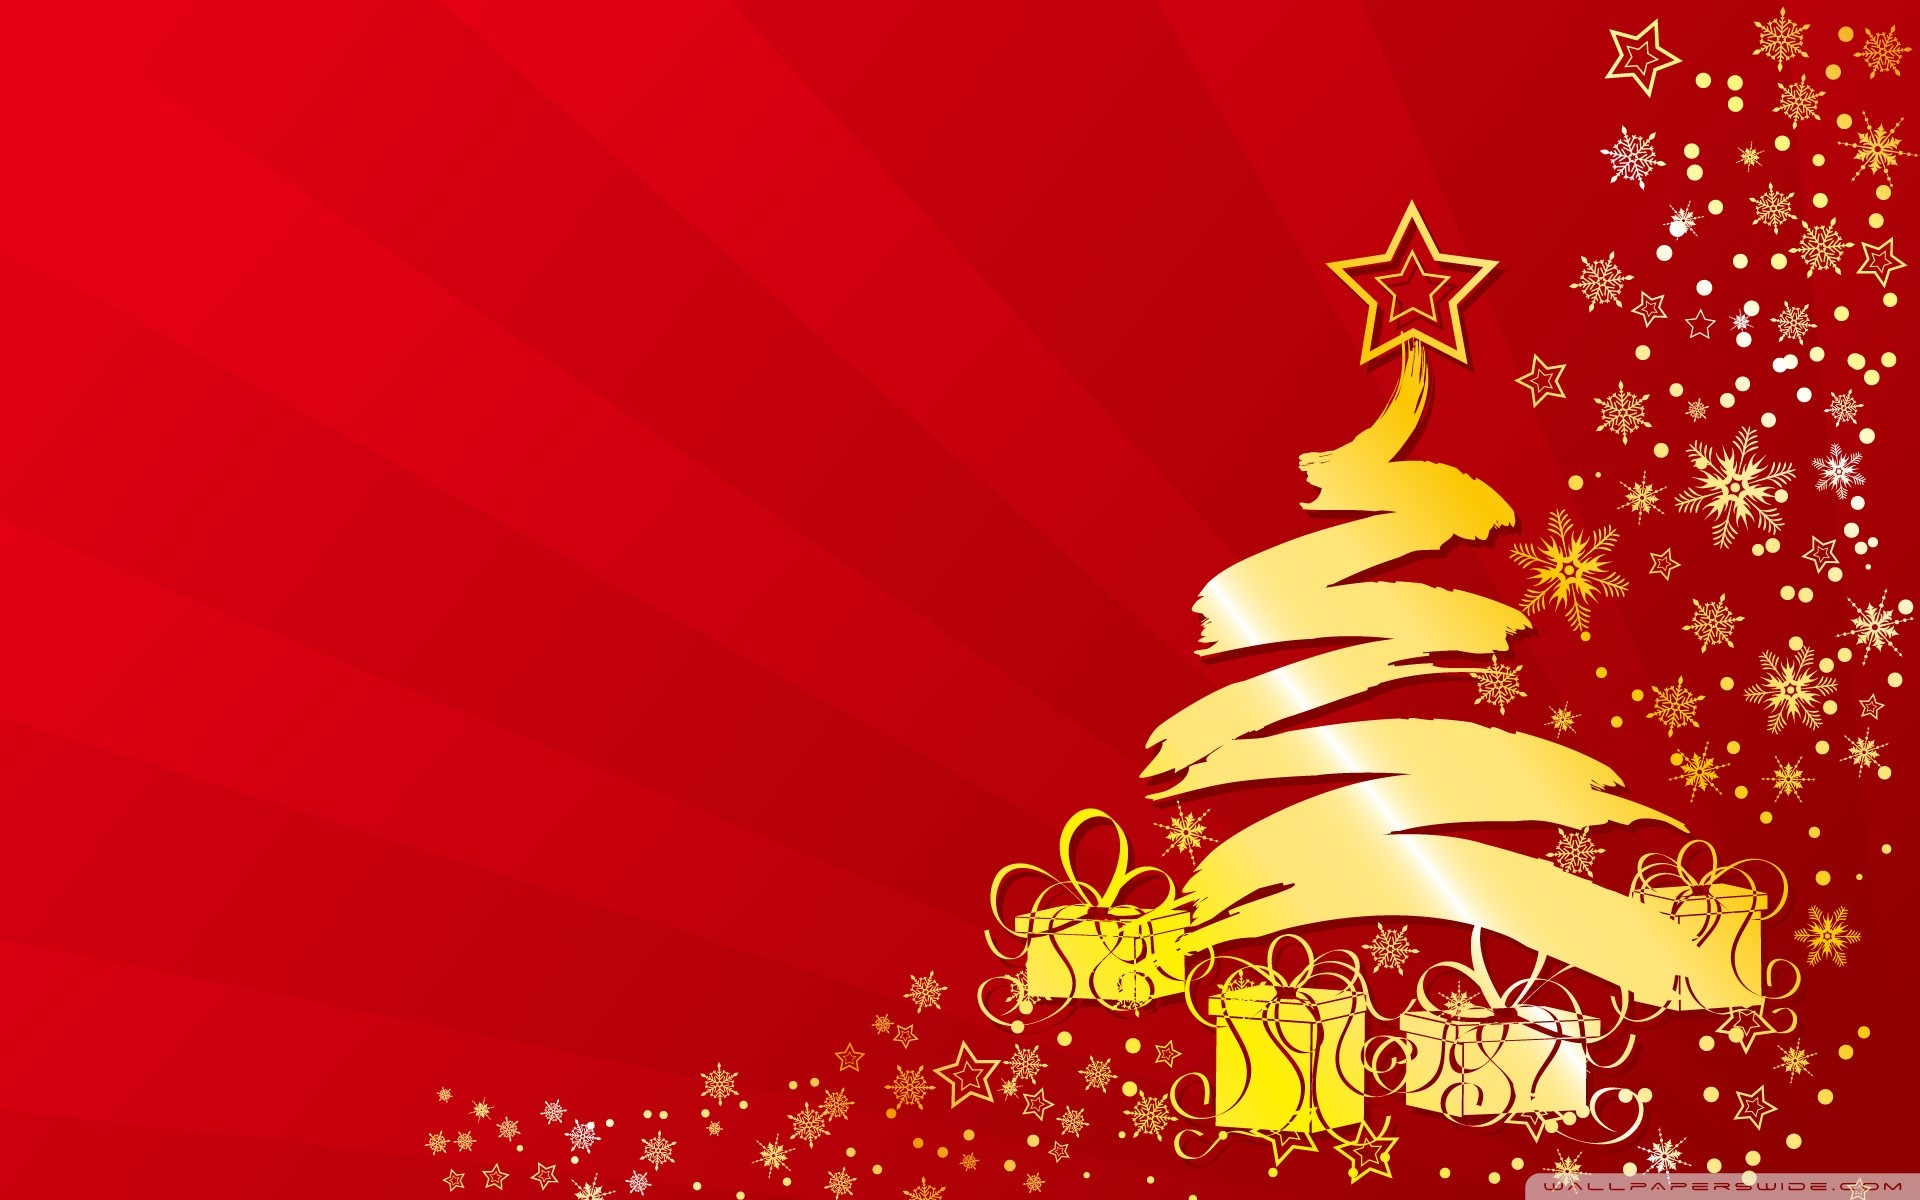 merry christmas background ·① download free cool hd wallpapers for